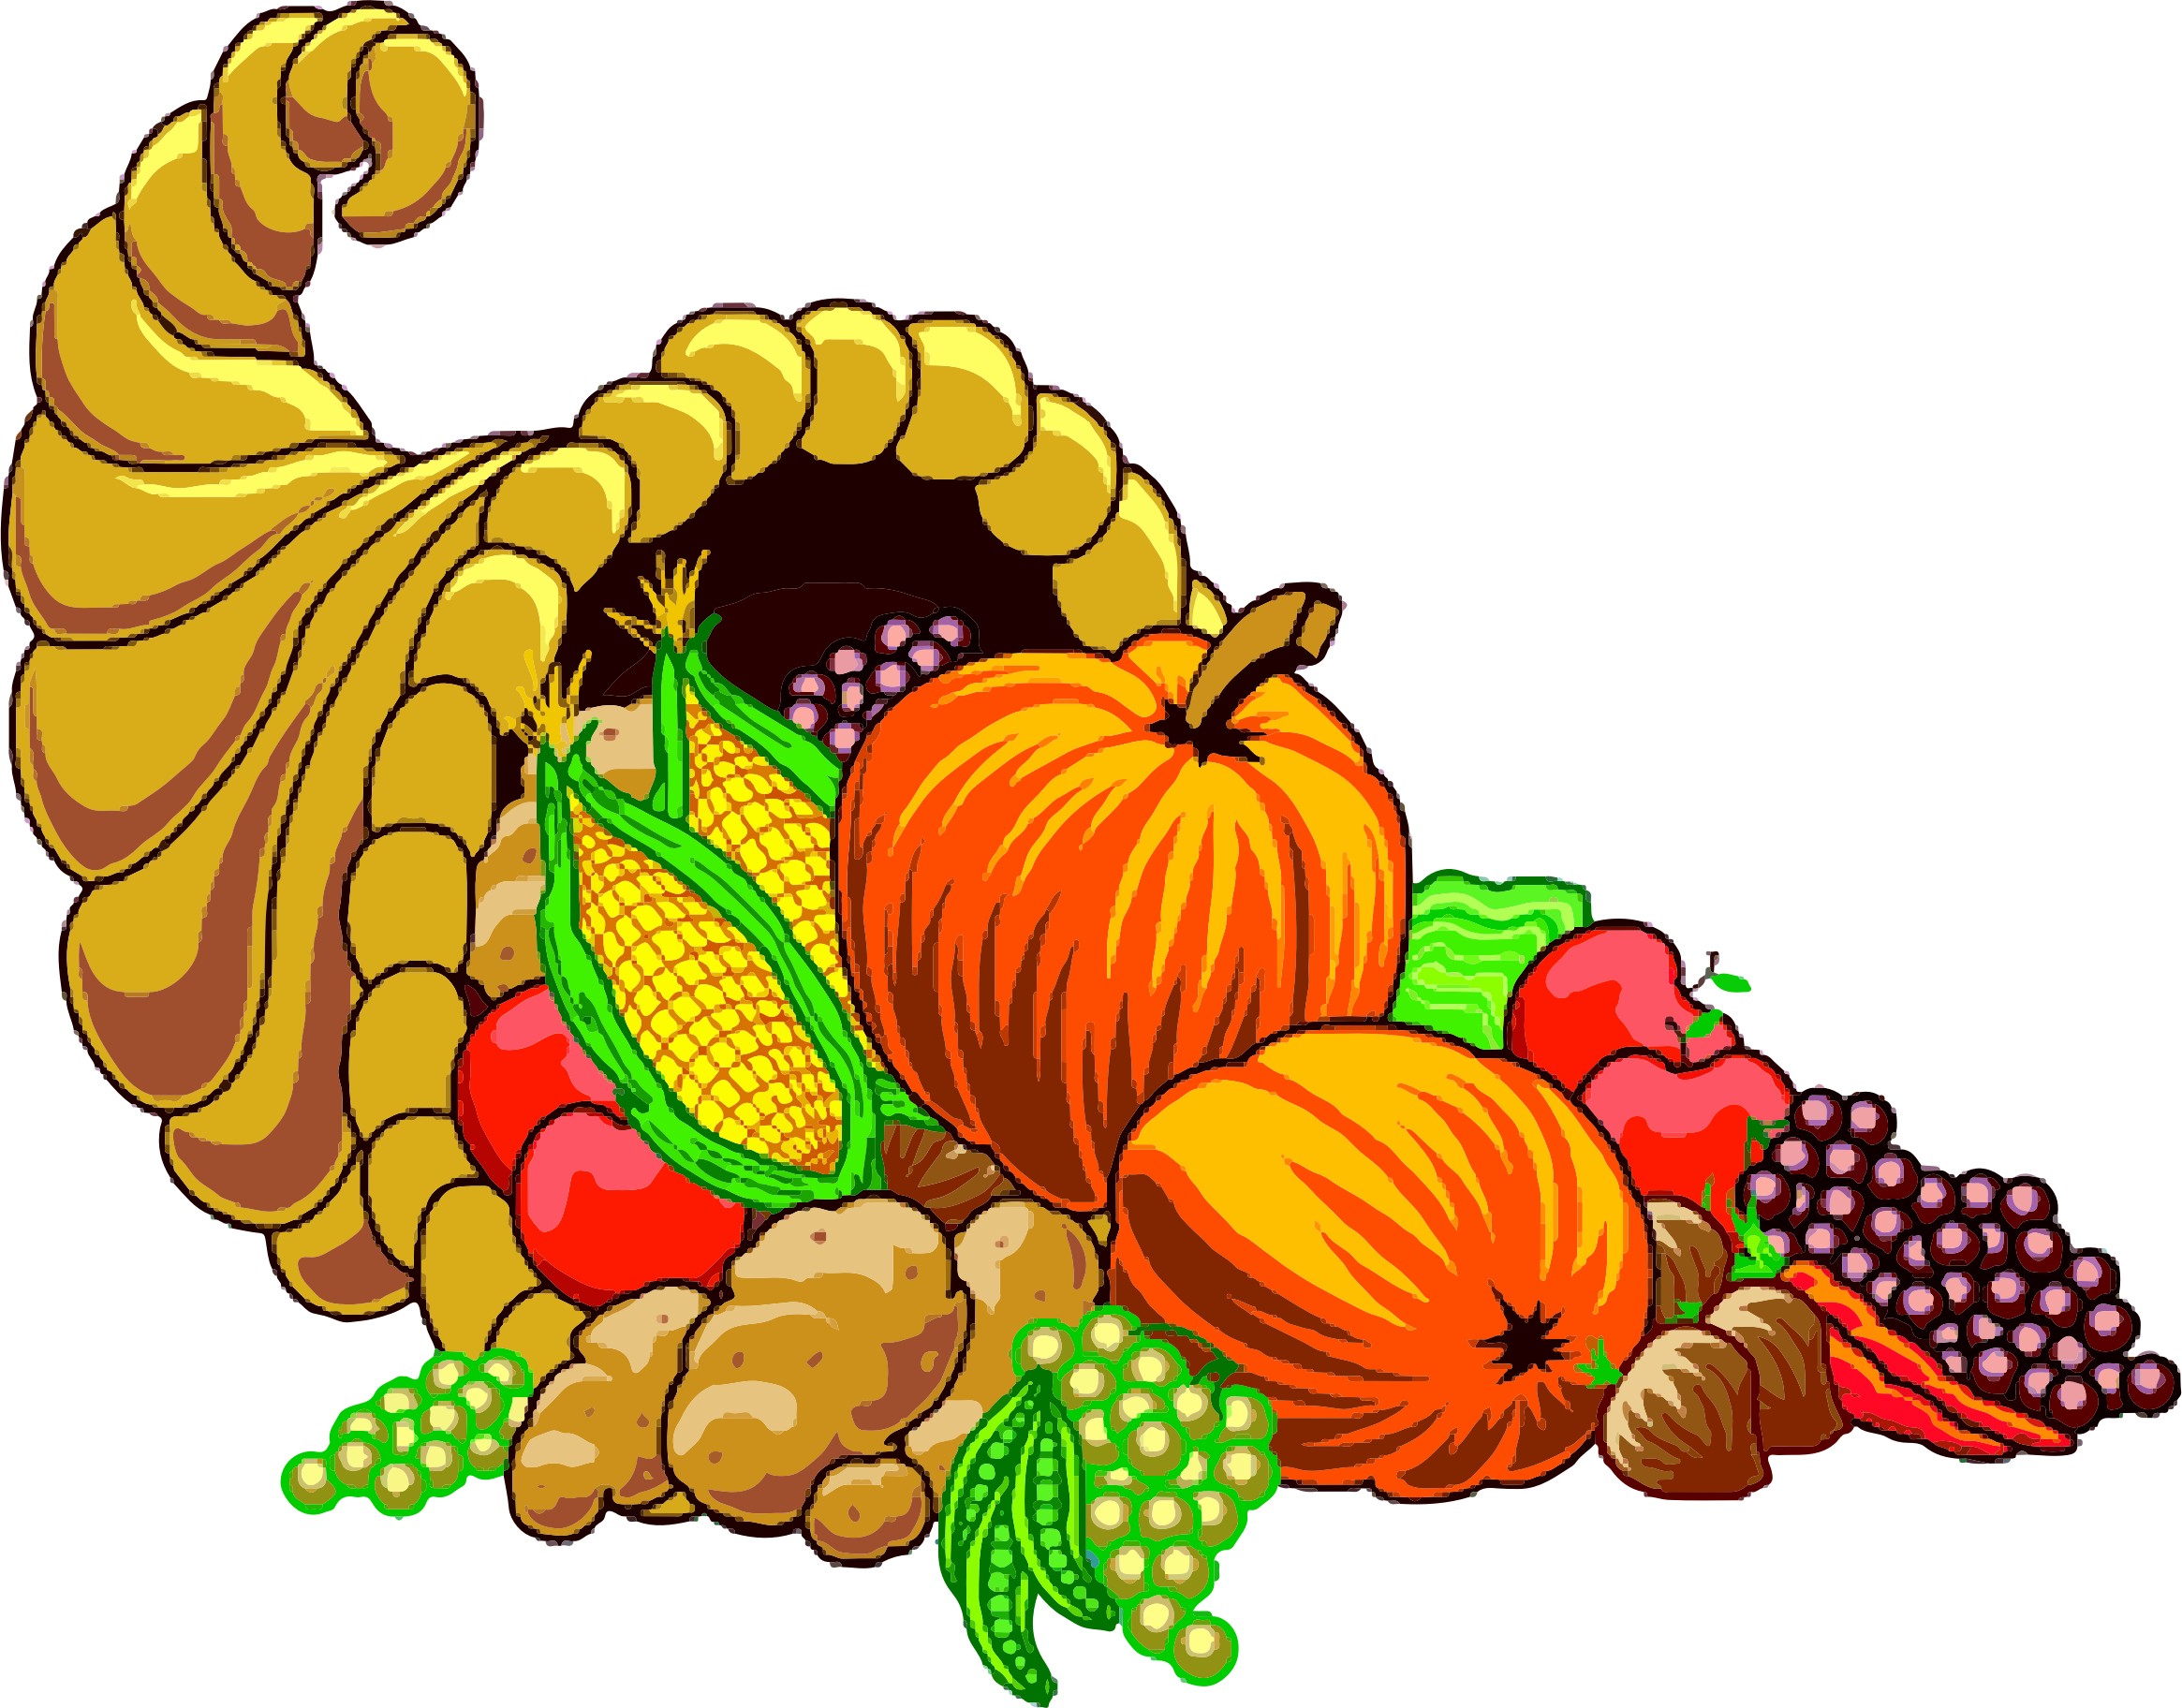 clipart cornucopia lq clip art thanksgiving fruits psalm 100 clip art thanksgiving fruits psalm 100